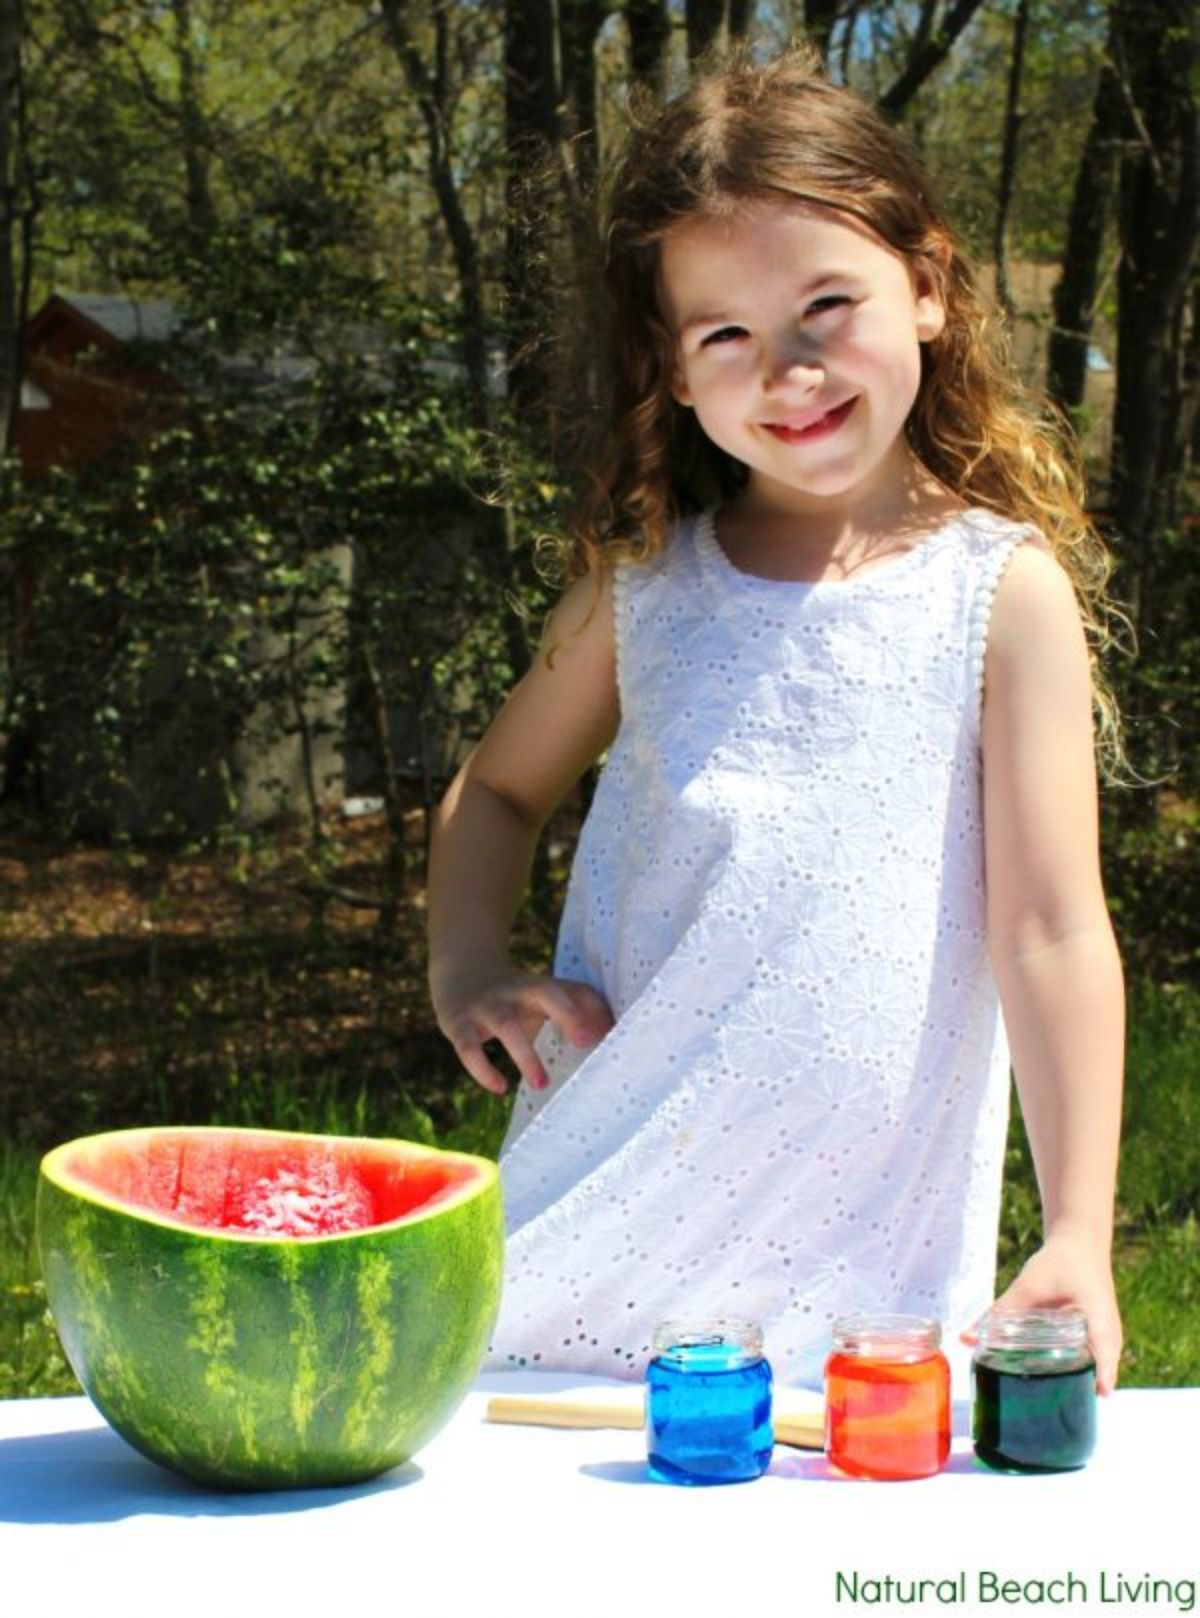 a girl in a white dress is standing in front of a table. on the table is half a watermelon hollowed out and 3 jars of coloured water